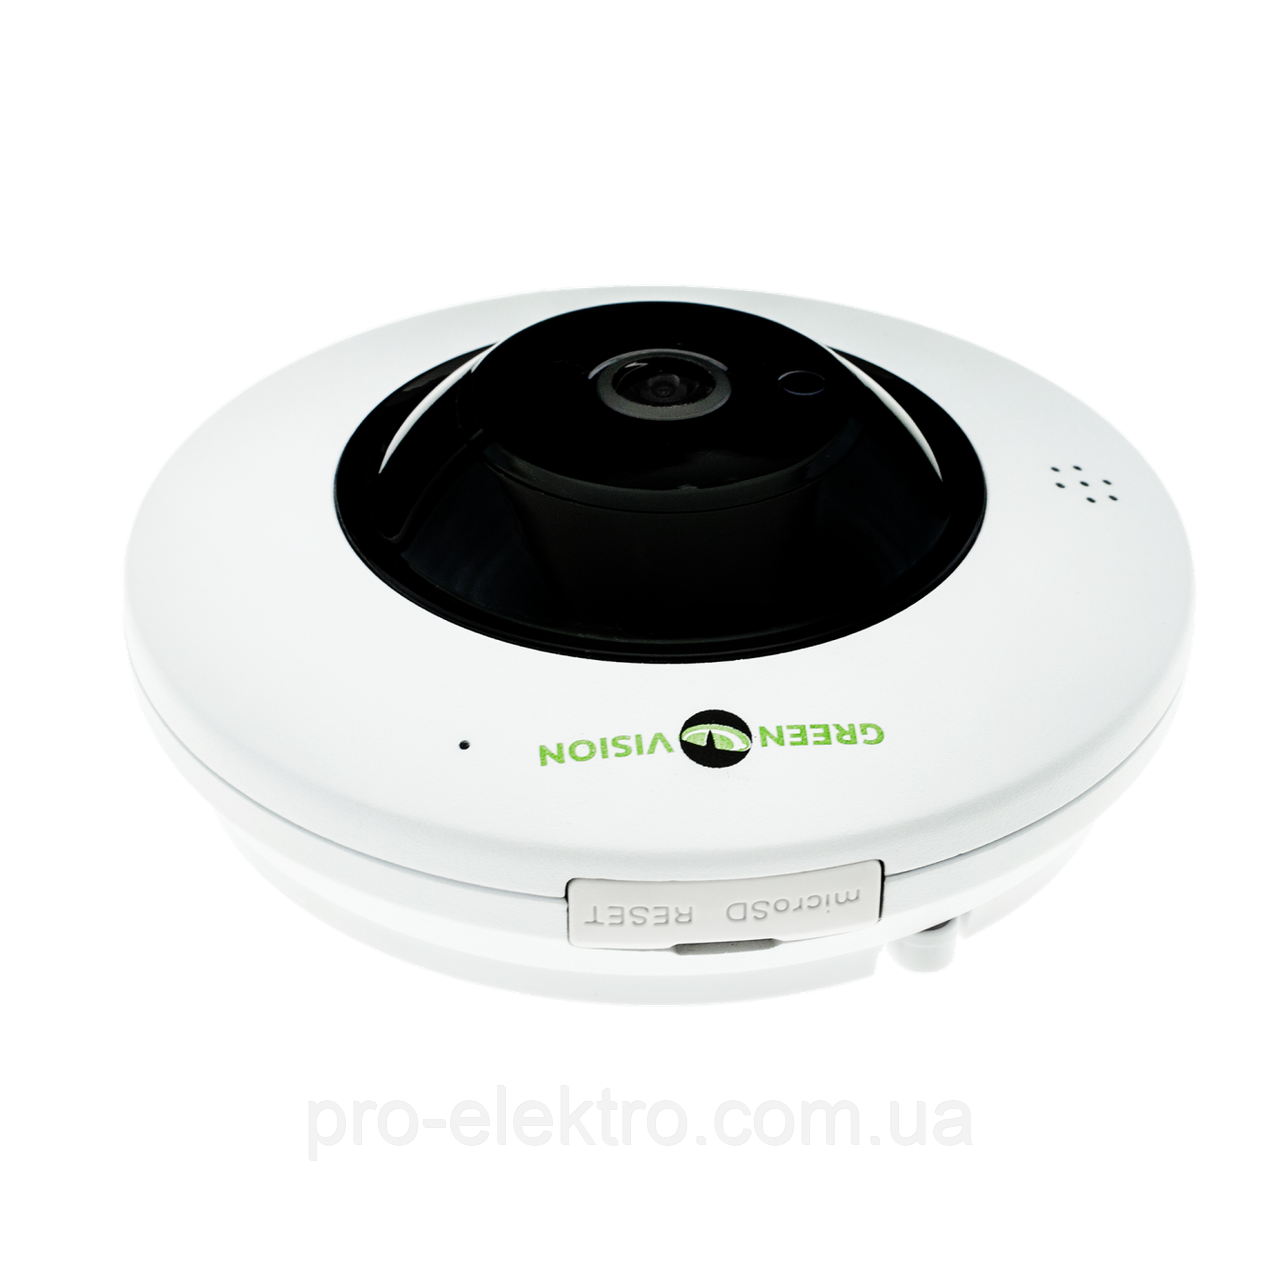 IP камера внутрішня GreenVision GV-076-IP-ME-DIS40-20 (360) POE